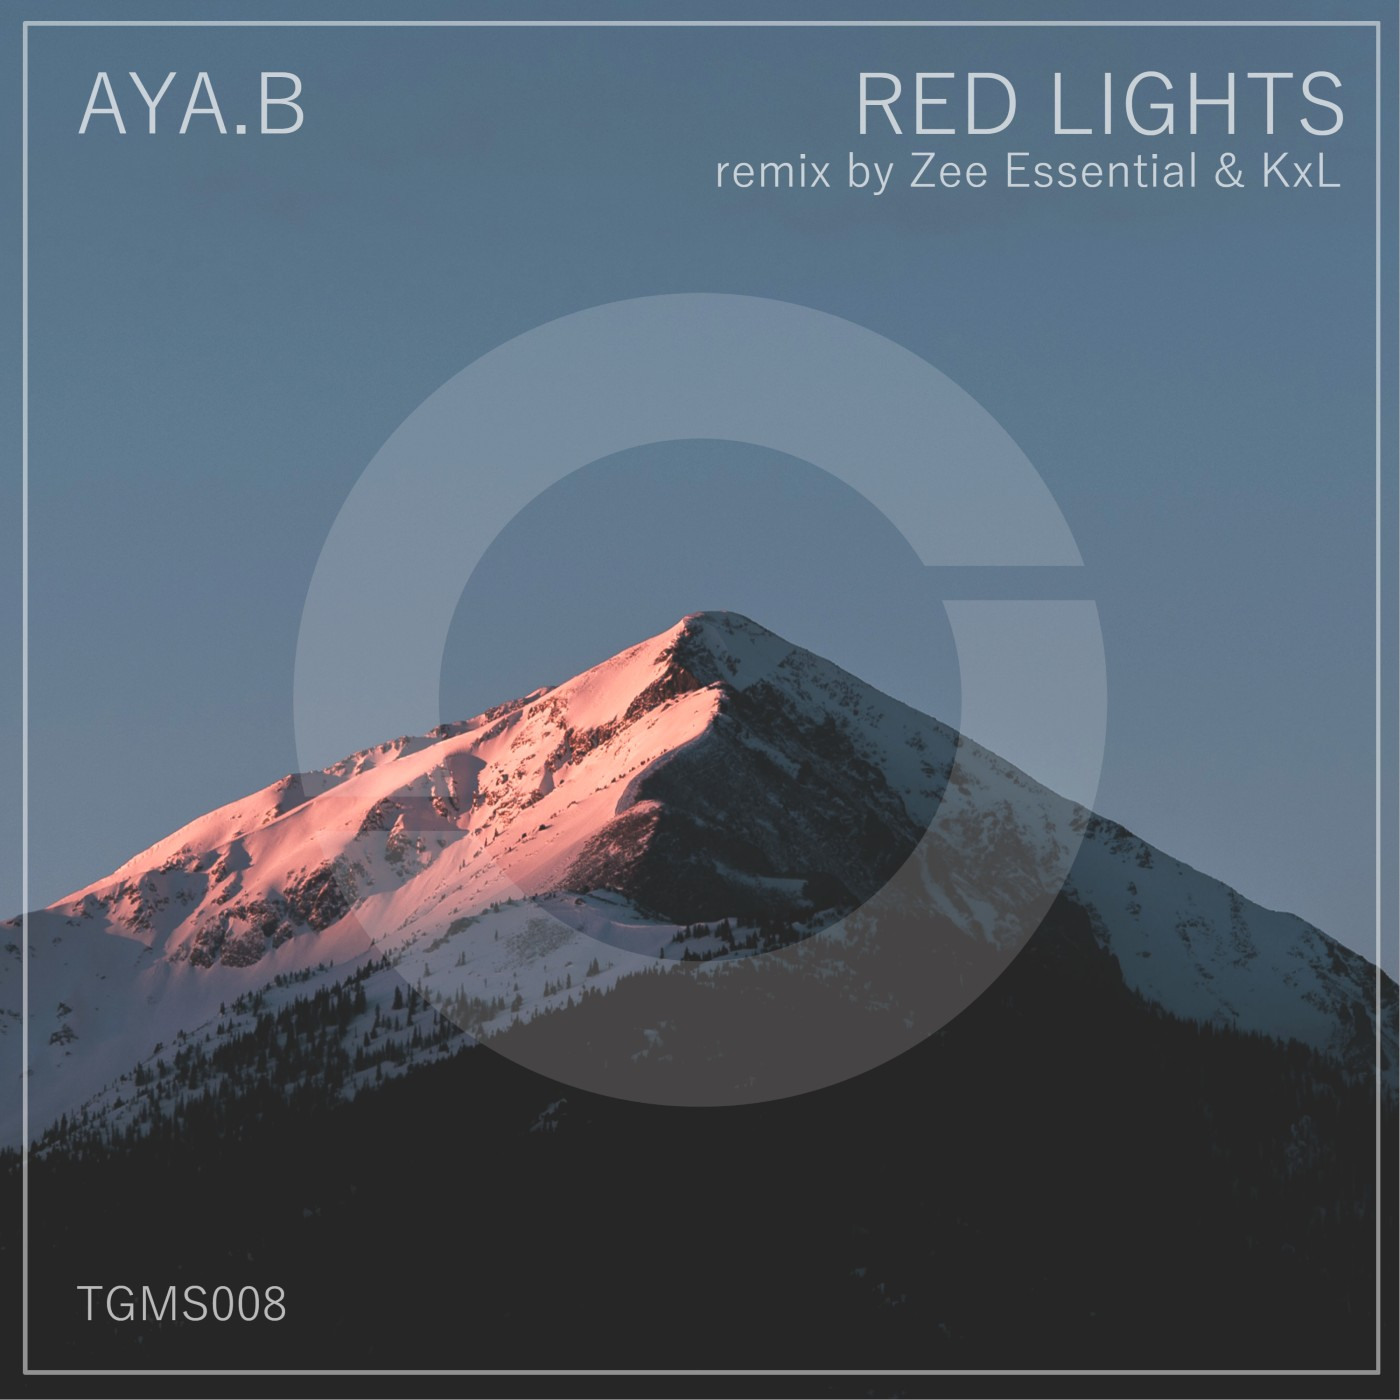 Aya.B - Red Lights (incl. Zee Essential & KxL remix)